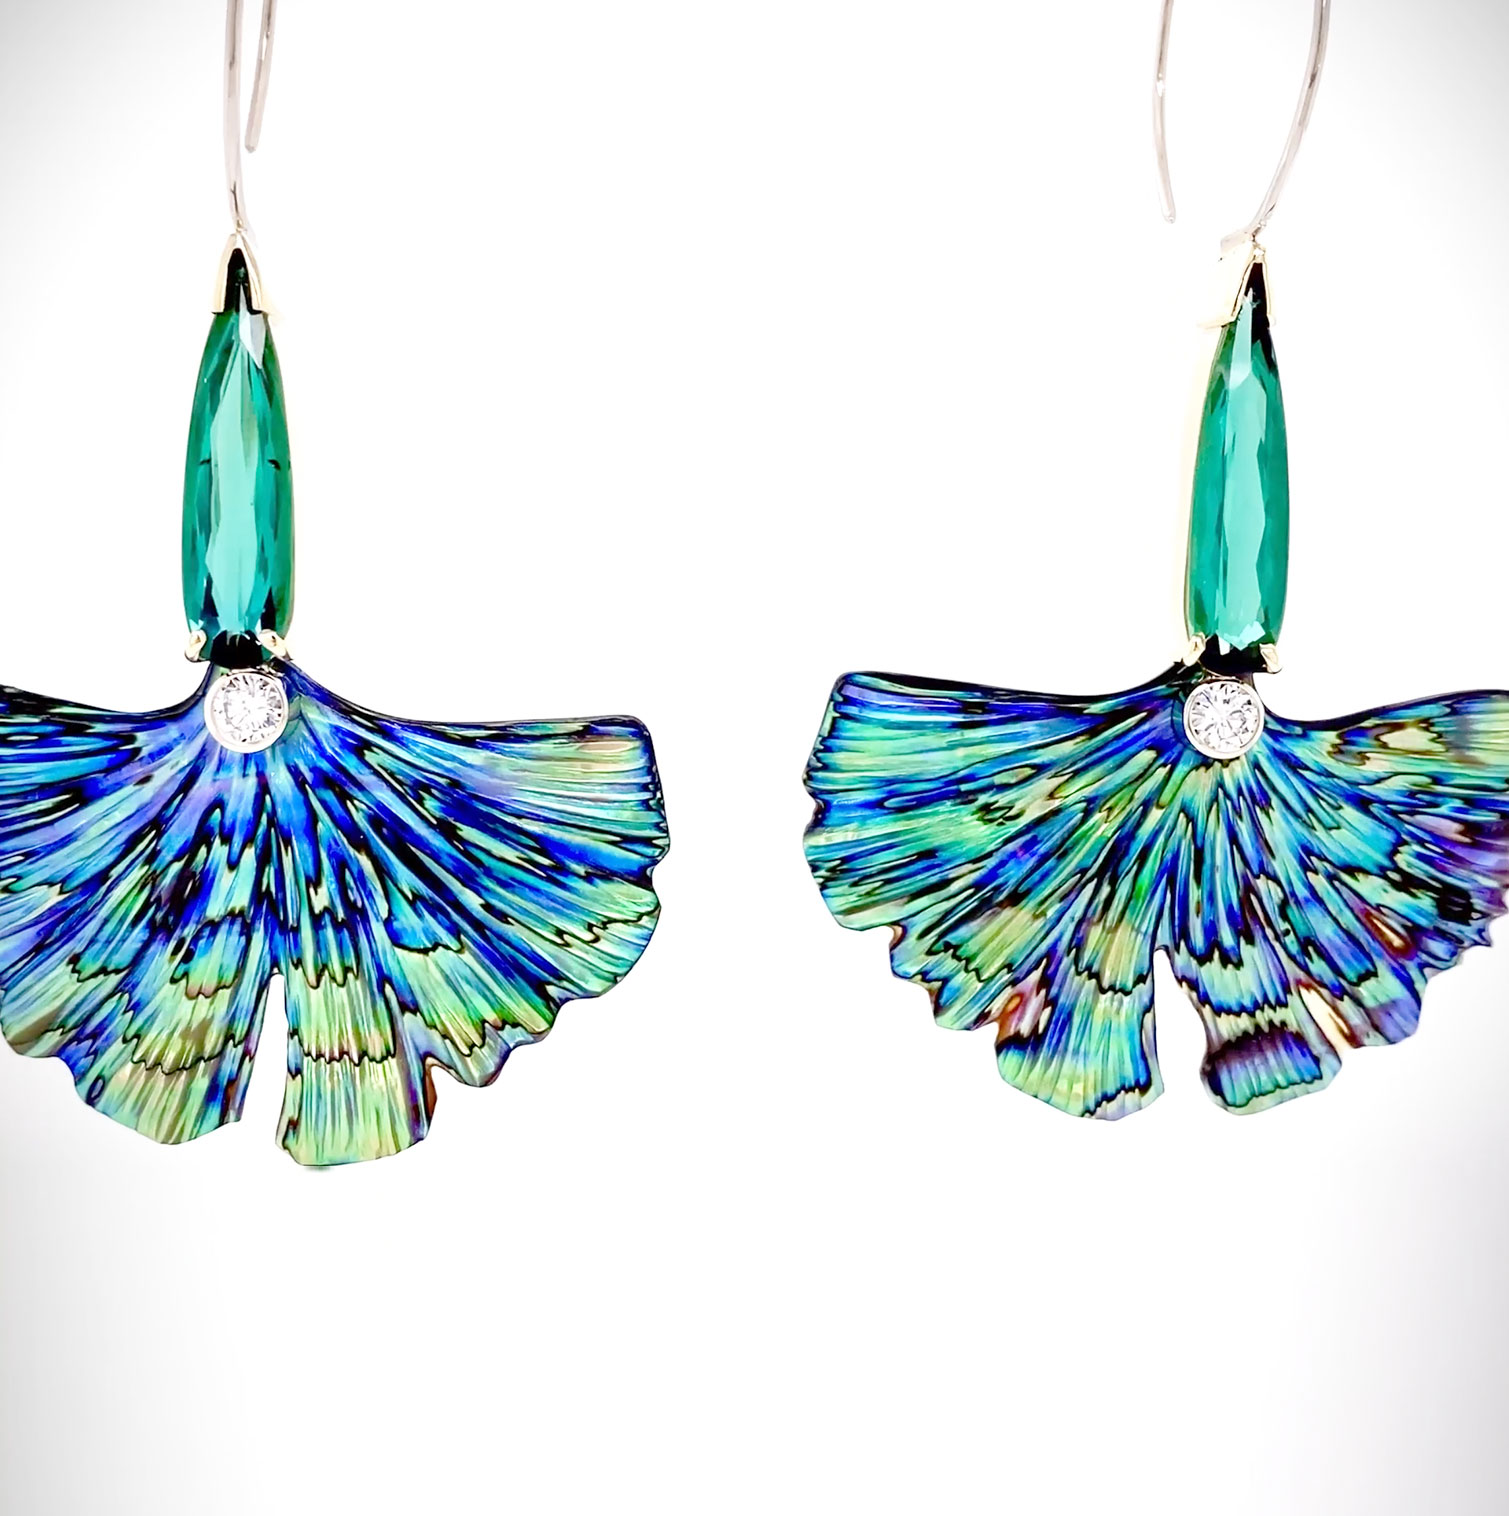 One-of-a-kind earrings with colorful, hand-carved Abalone Ginko leaves leading up to long pear-shaped Green Tourmalines accented with Diamonds